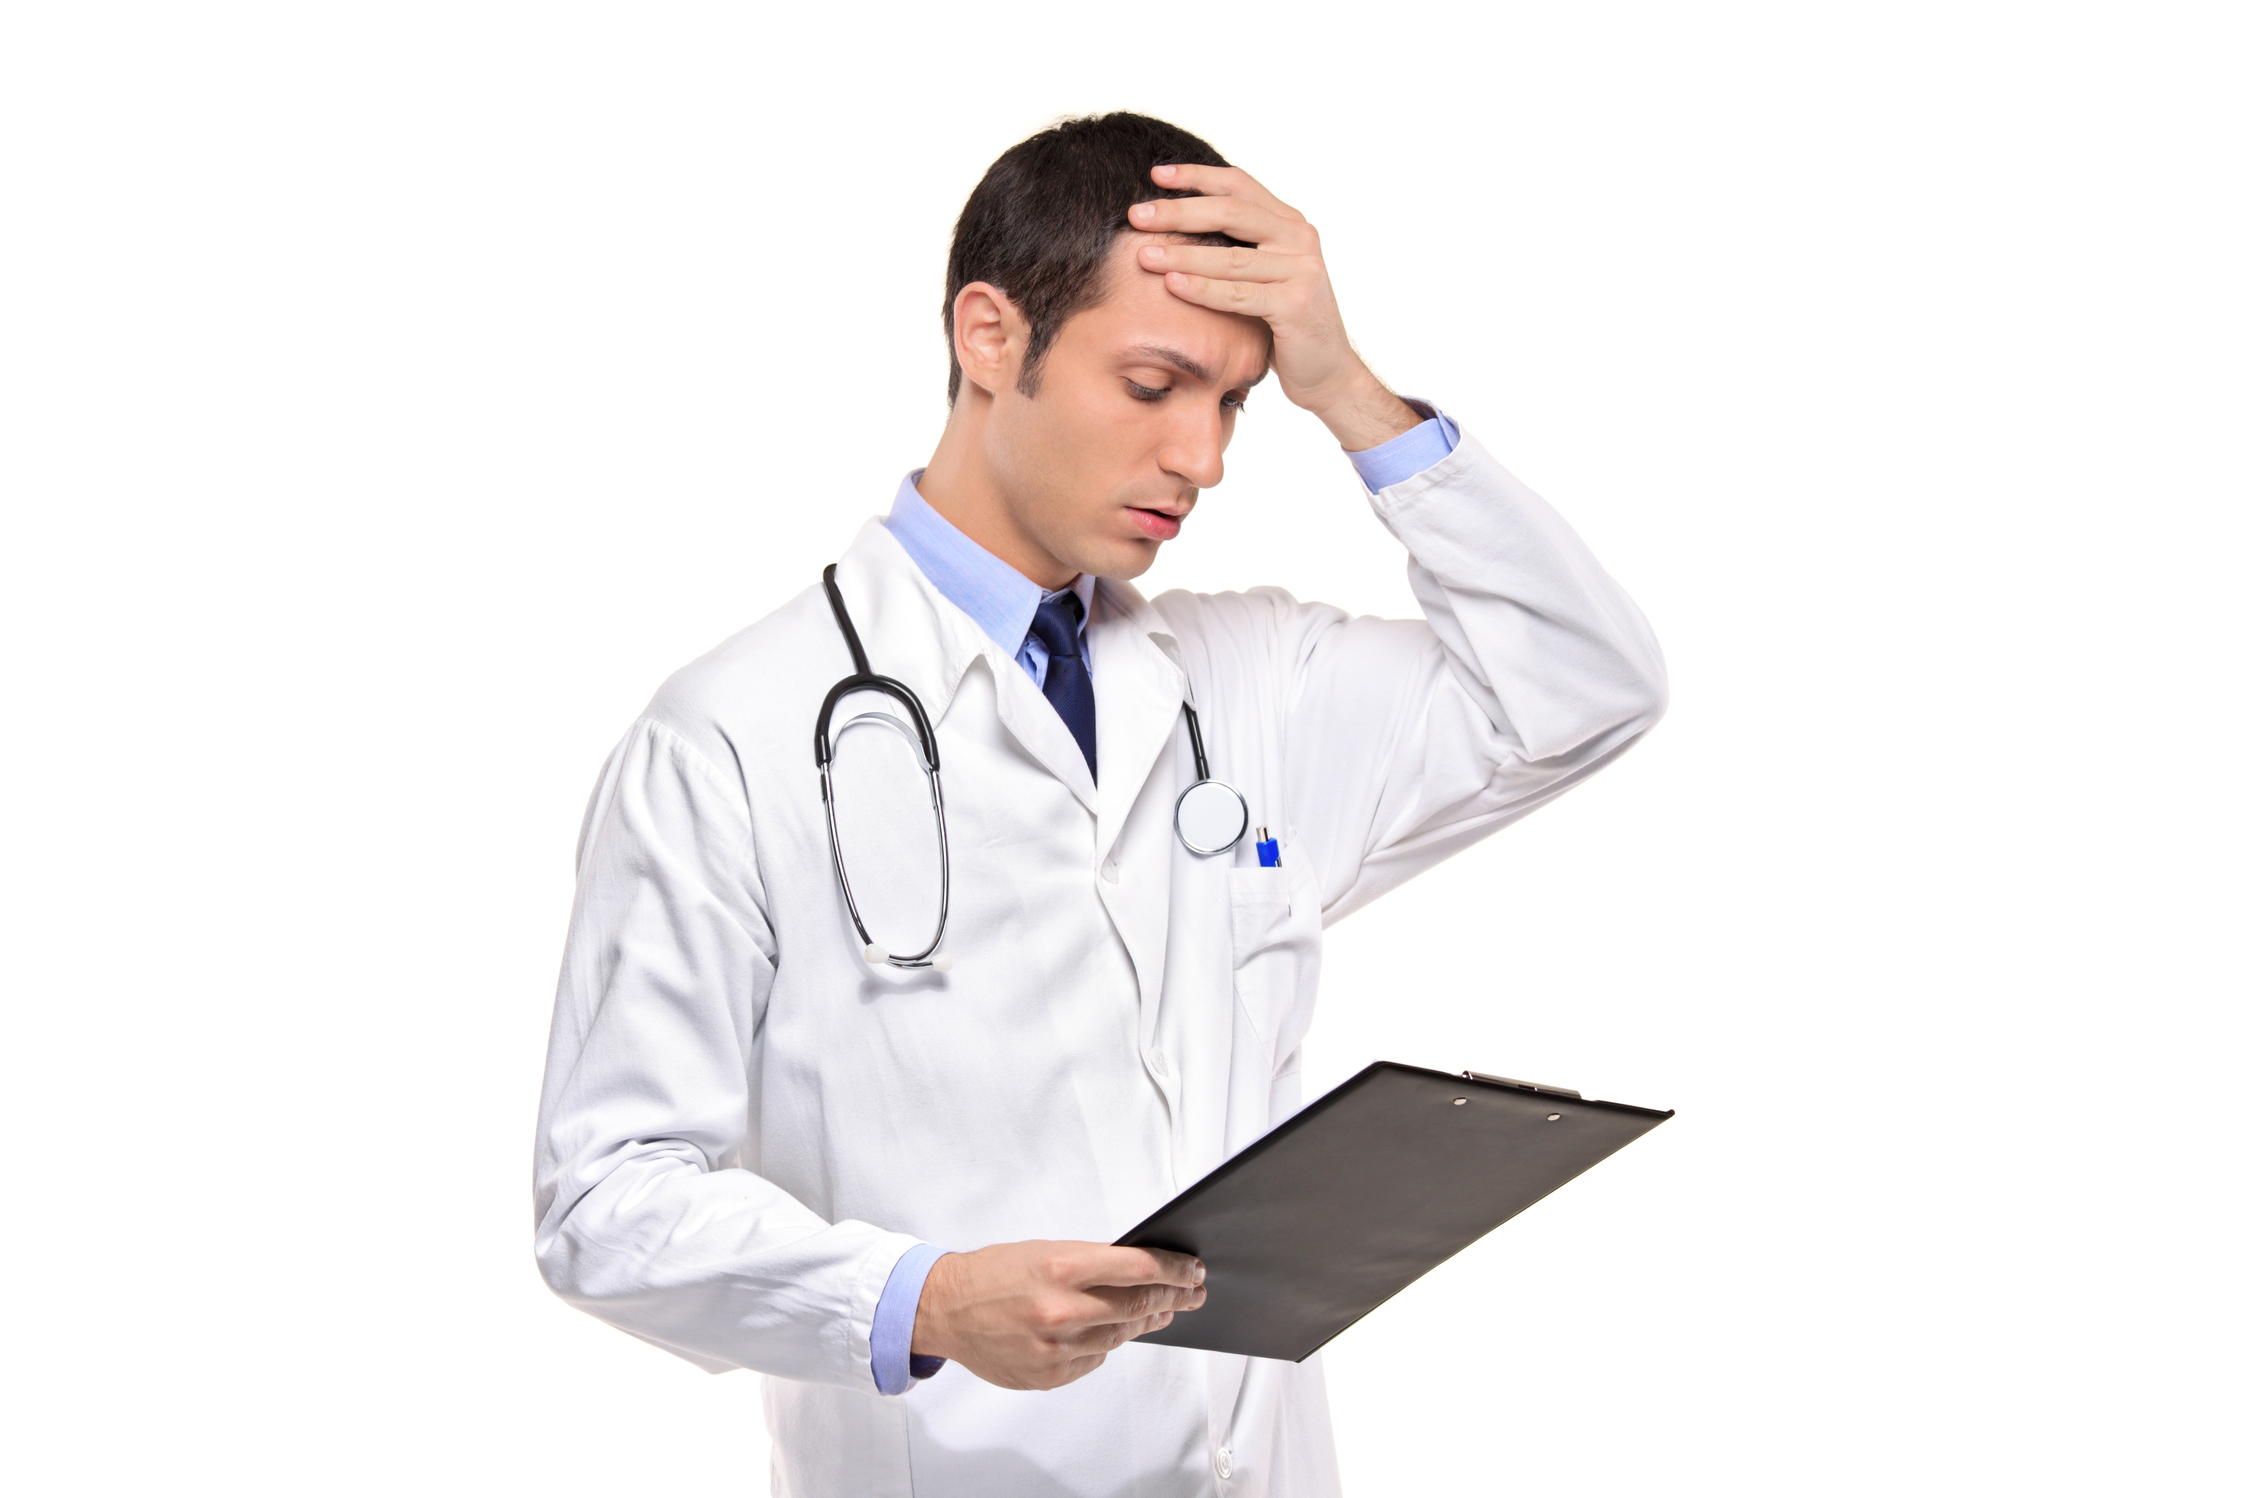 Malpractice Insurance: Here is What You Need to Know